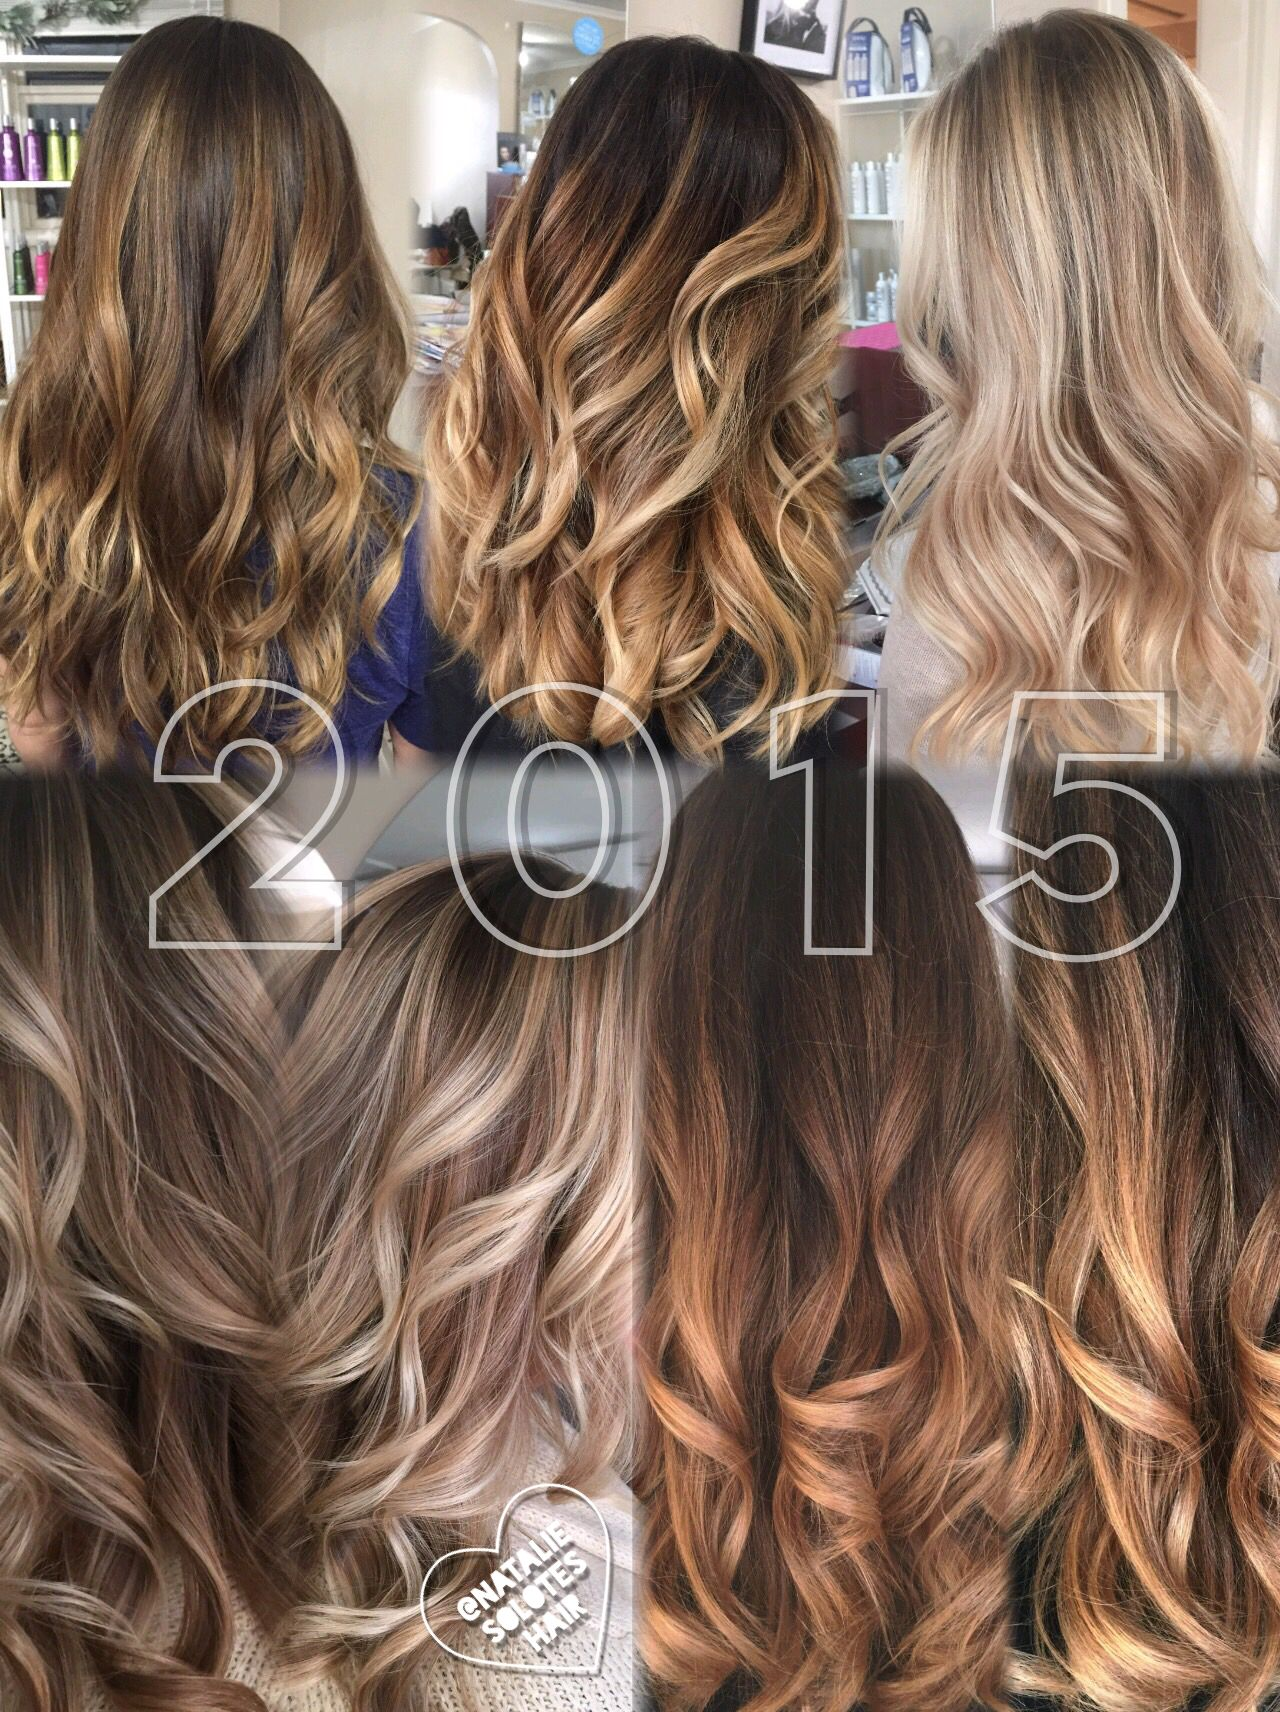 Photo Examples Of Dark Roots And Blonde Haircolor Combiantions